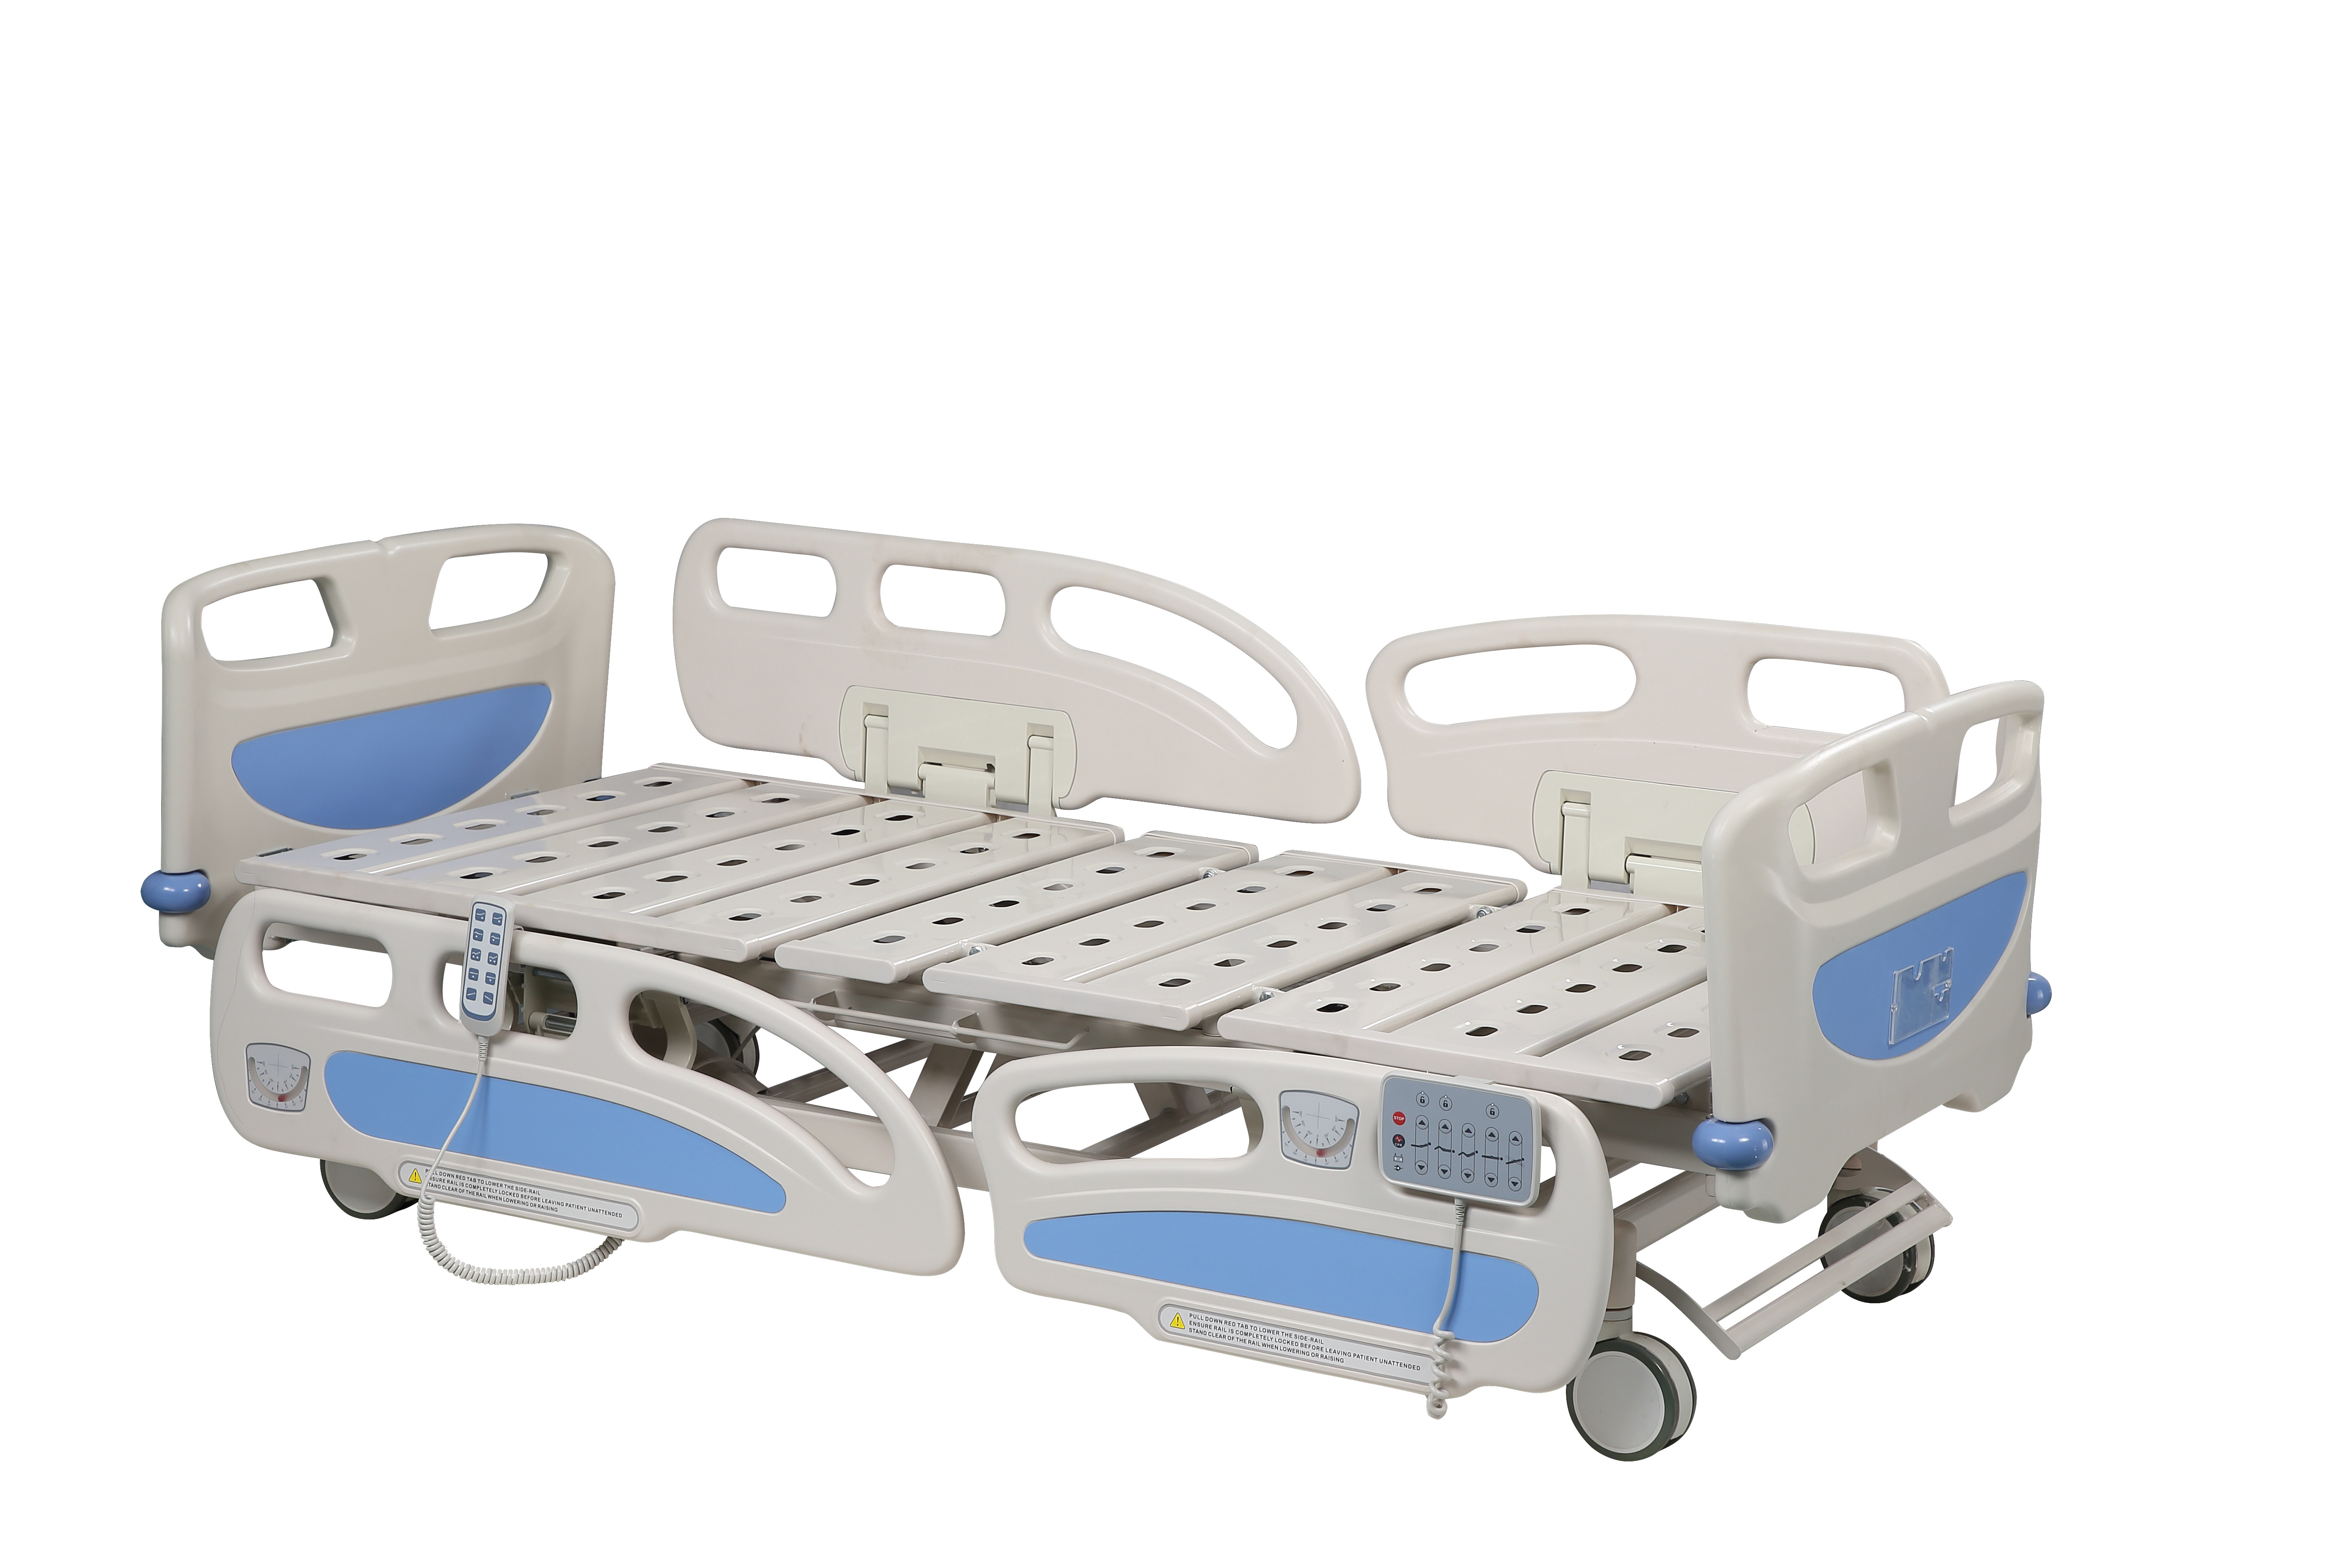 4 Double Side Silcent Wheels Hospital Style Beds For Home Use